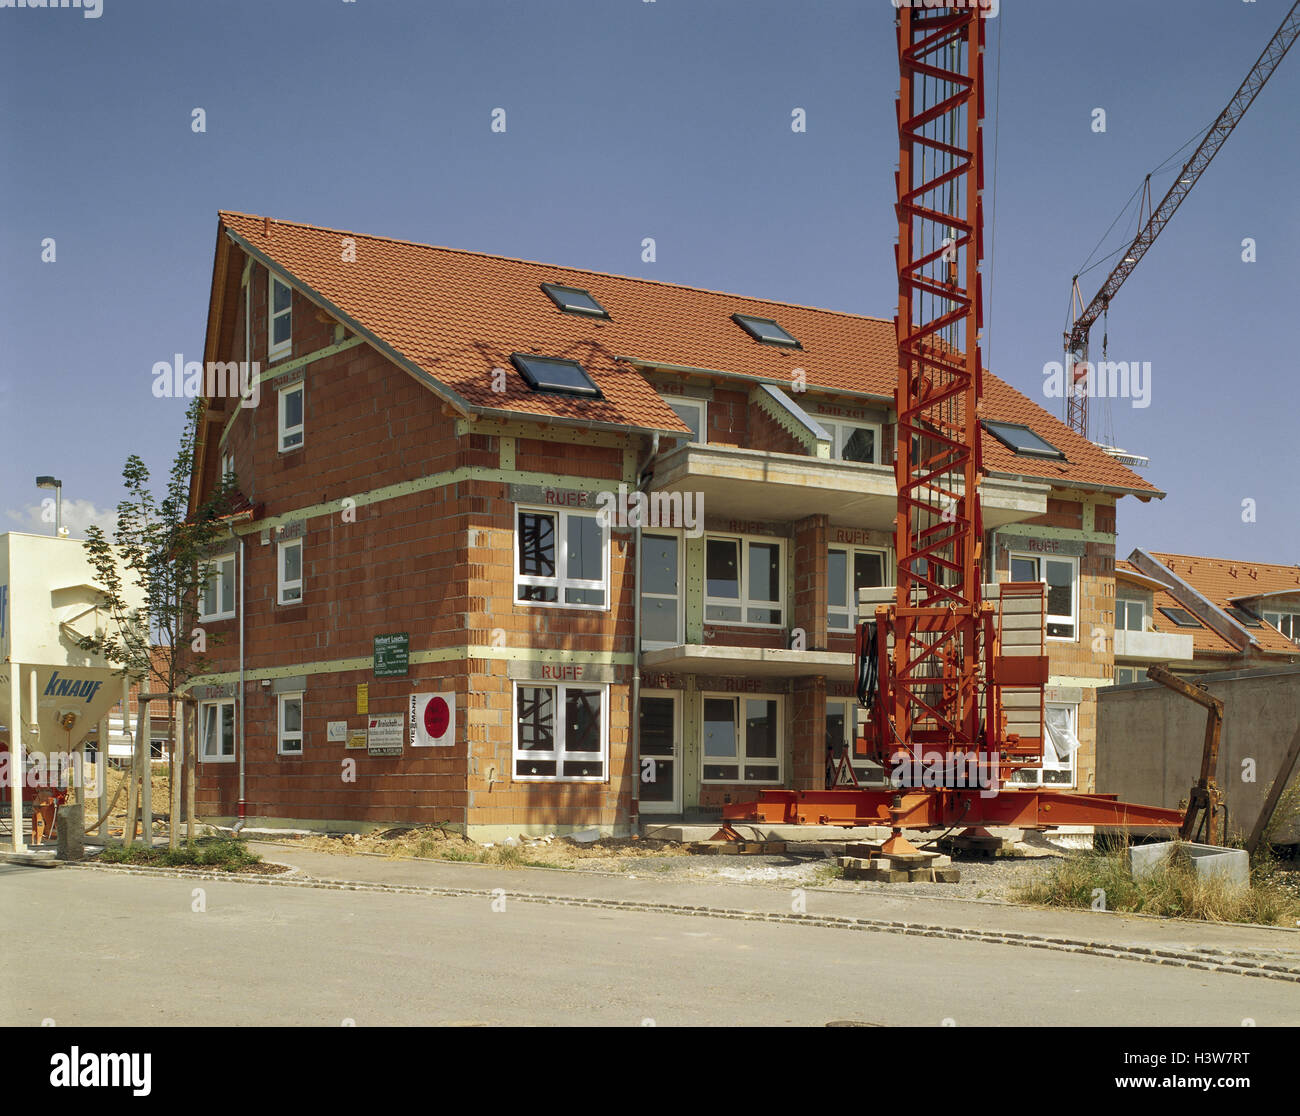 crane construction house stockfotos crane construction house bilder alamy. Black Bedroom Furniture Sets. Home Design Ideas